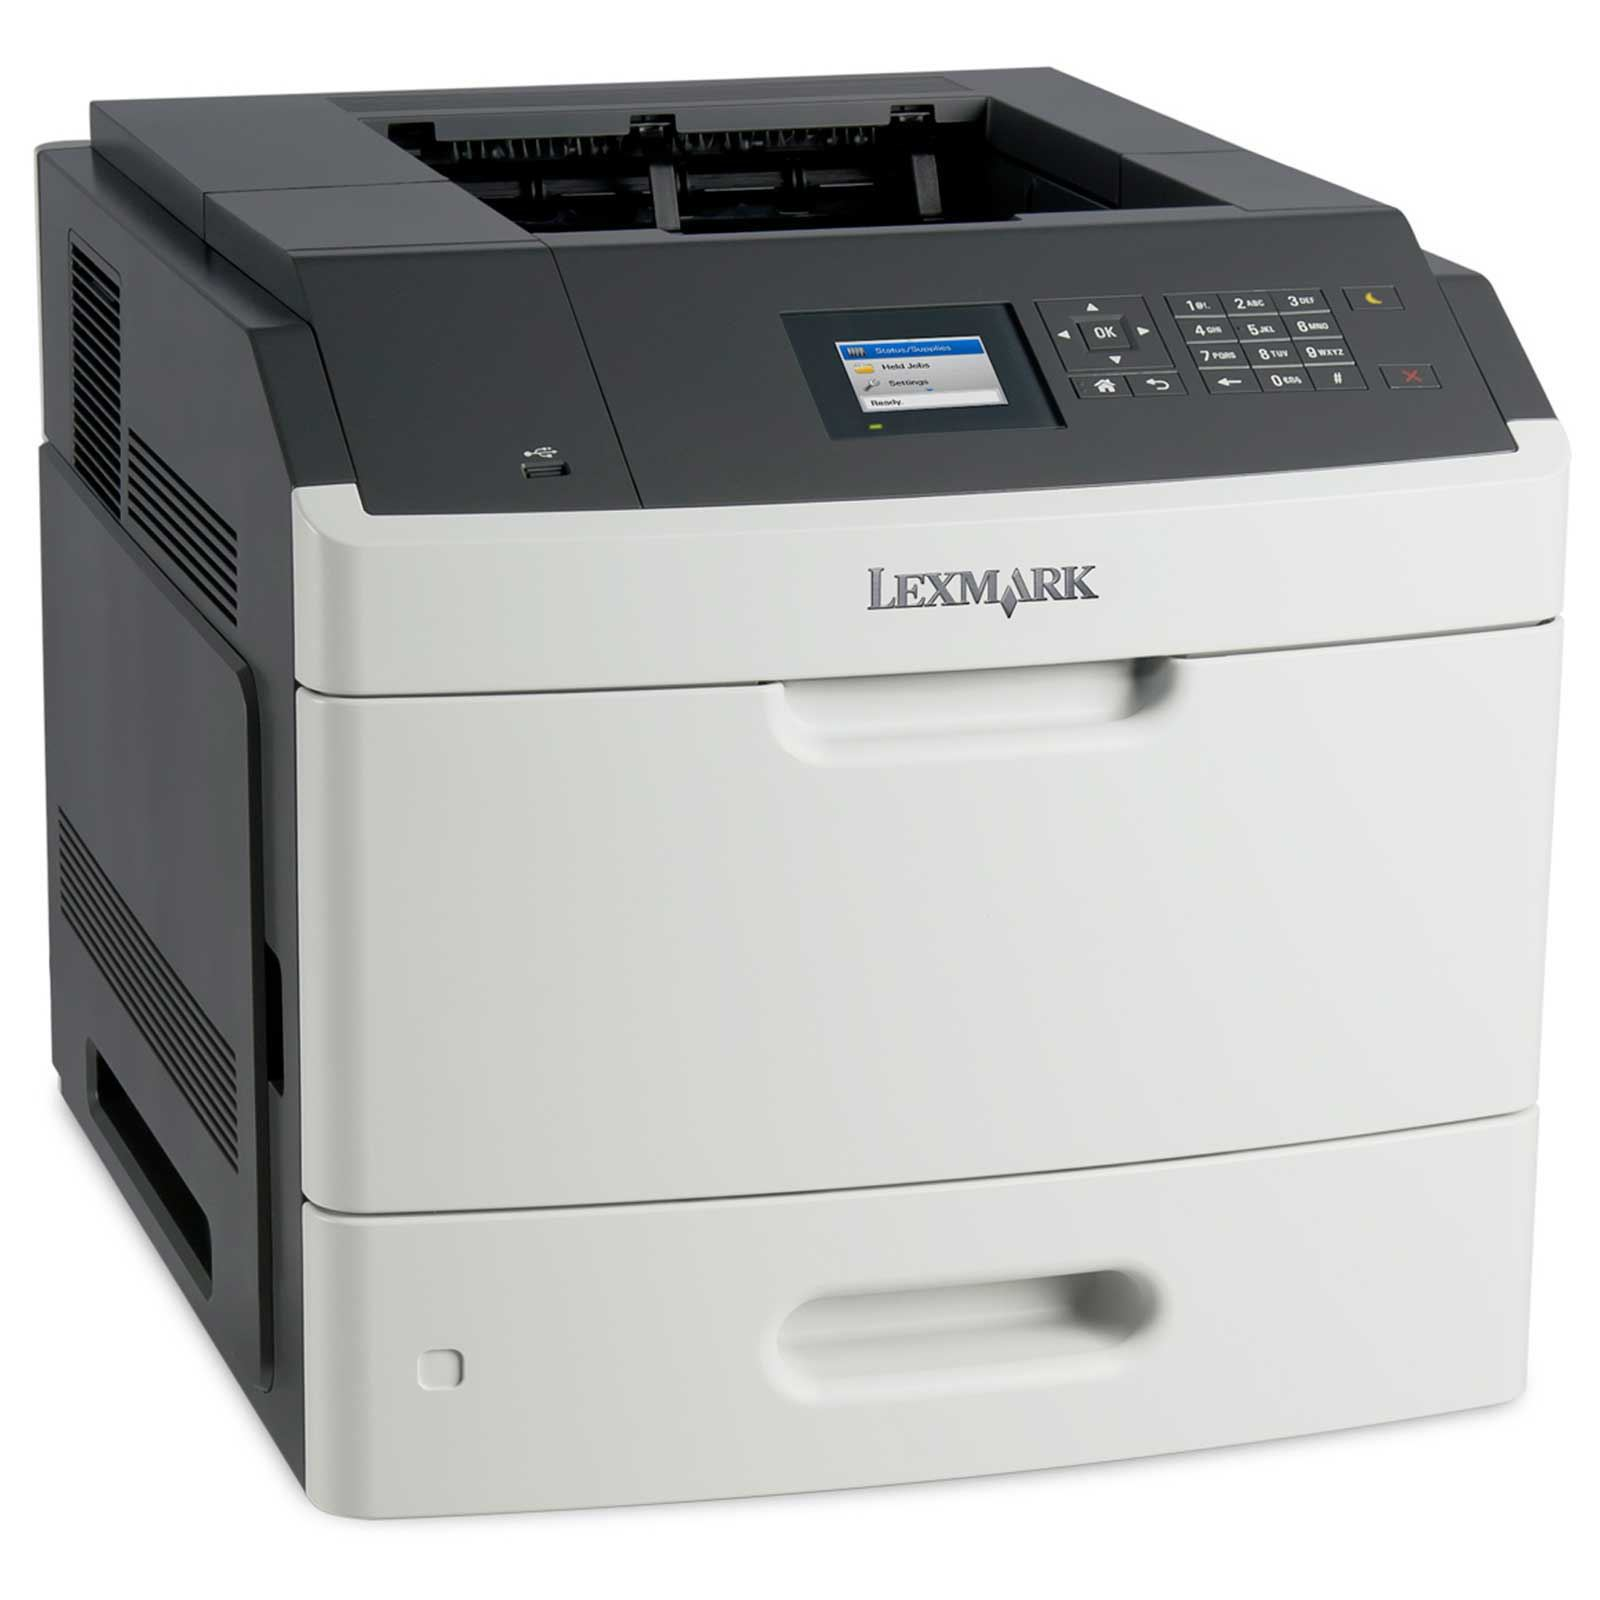 Lexmark MS810dn Printer Universal PCL5e Drivers for Windows Download